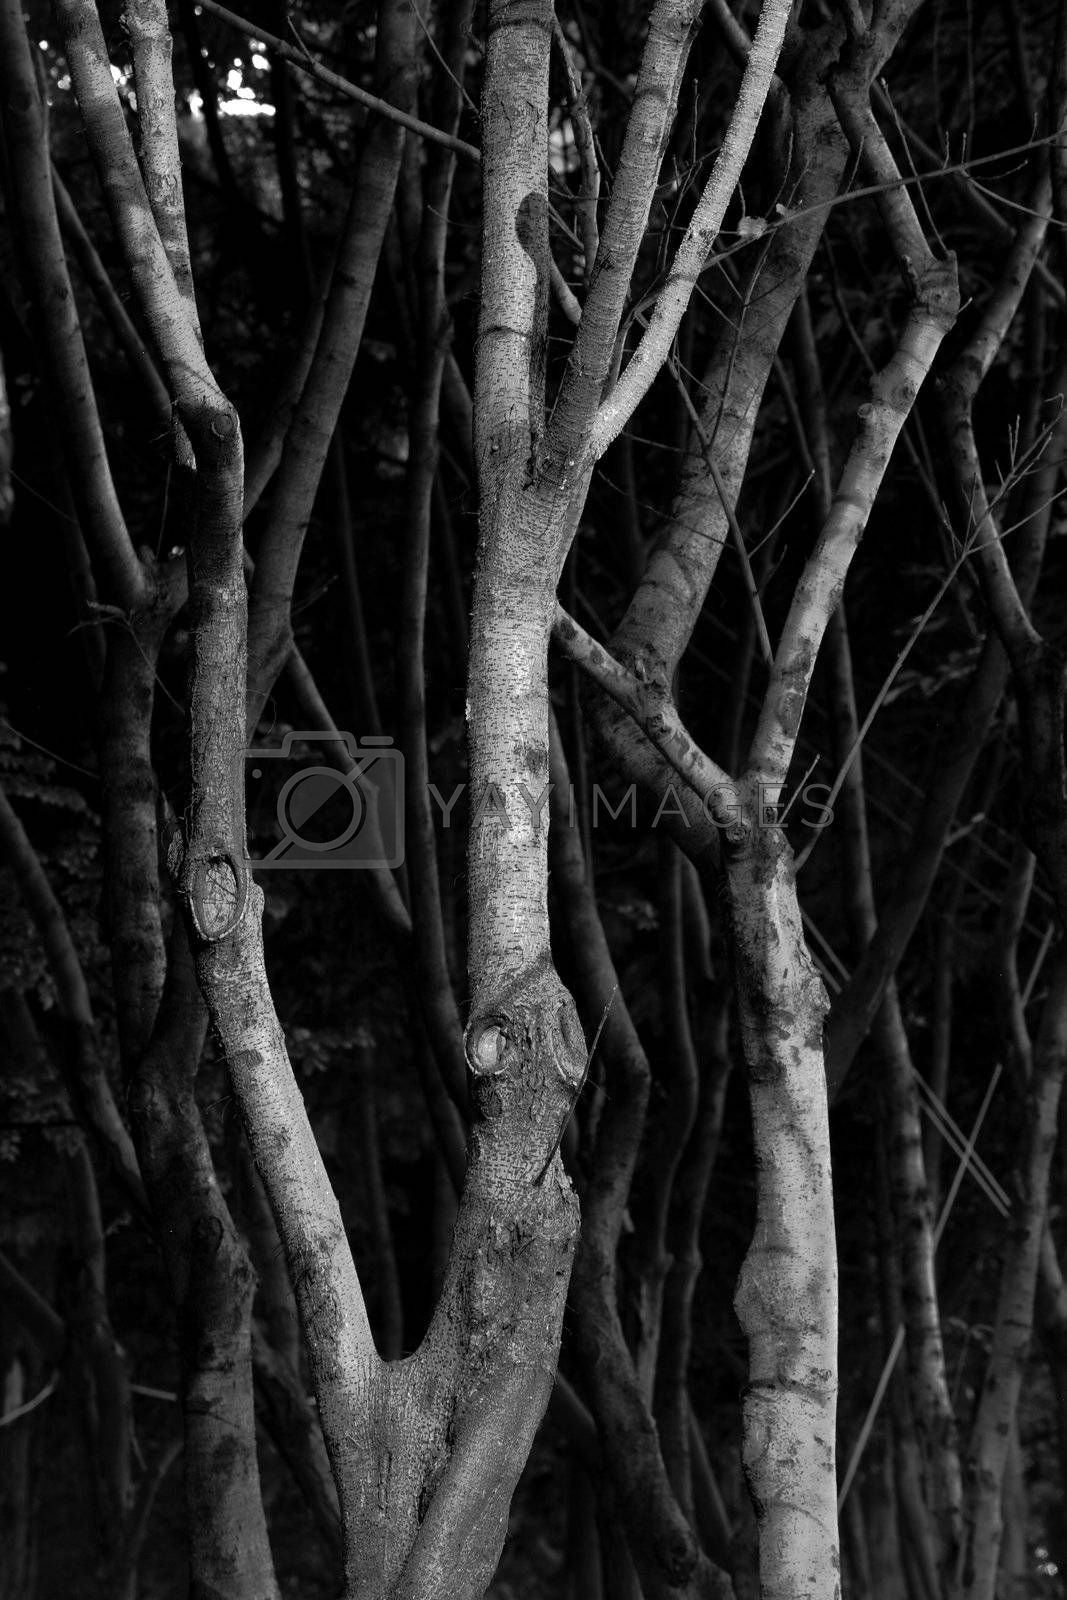 Royalty free image of branch background, sadness tone by leungchopan